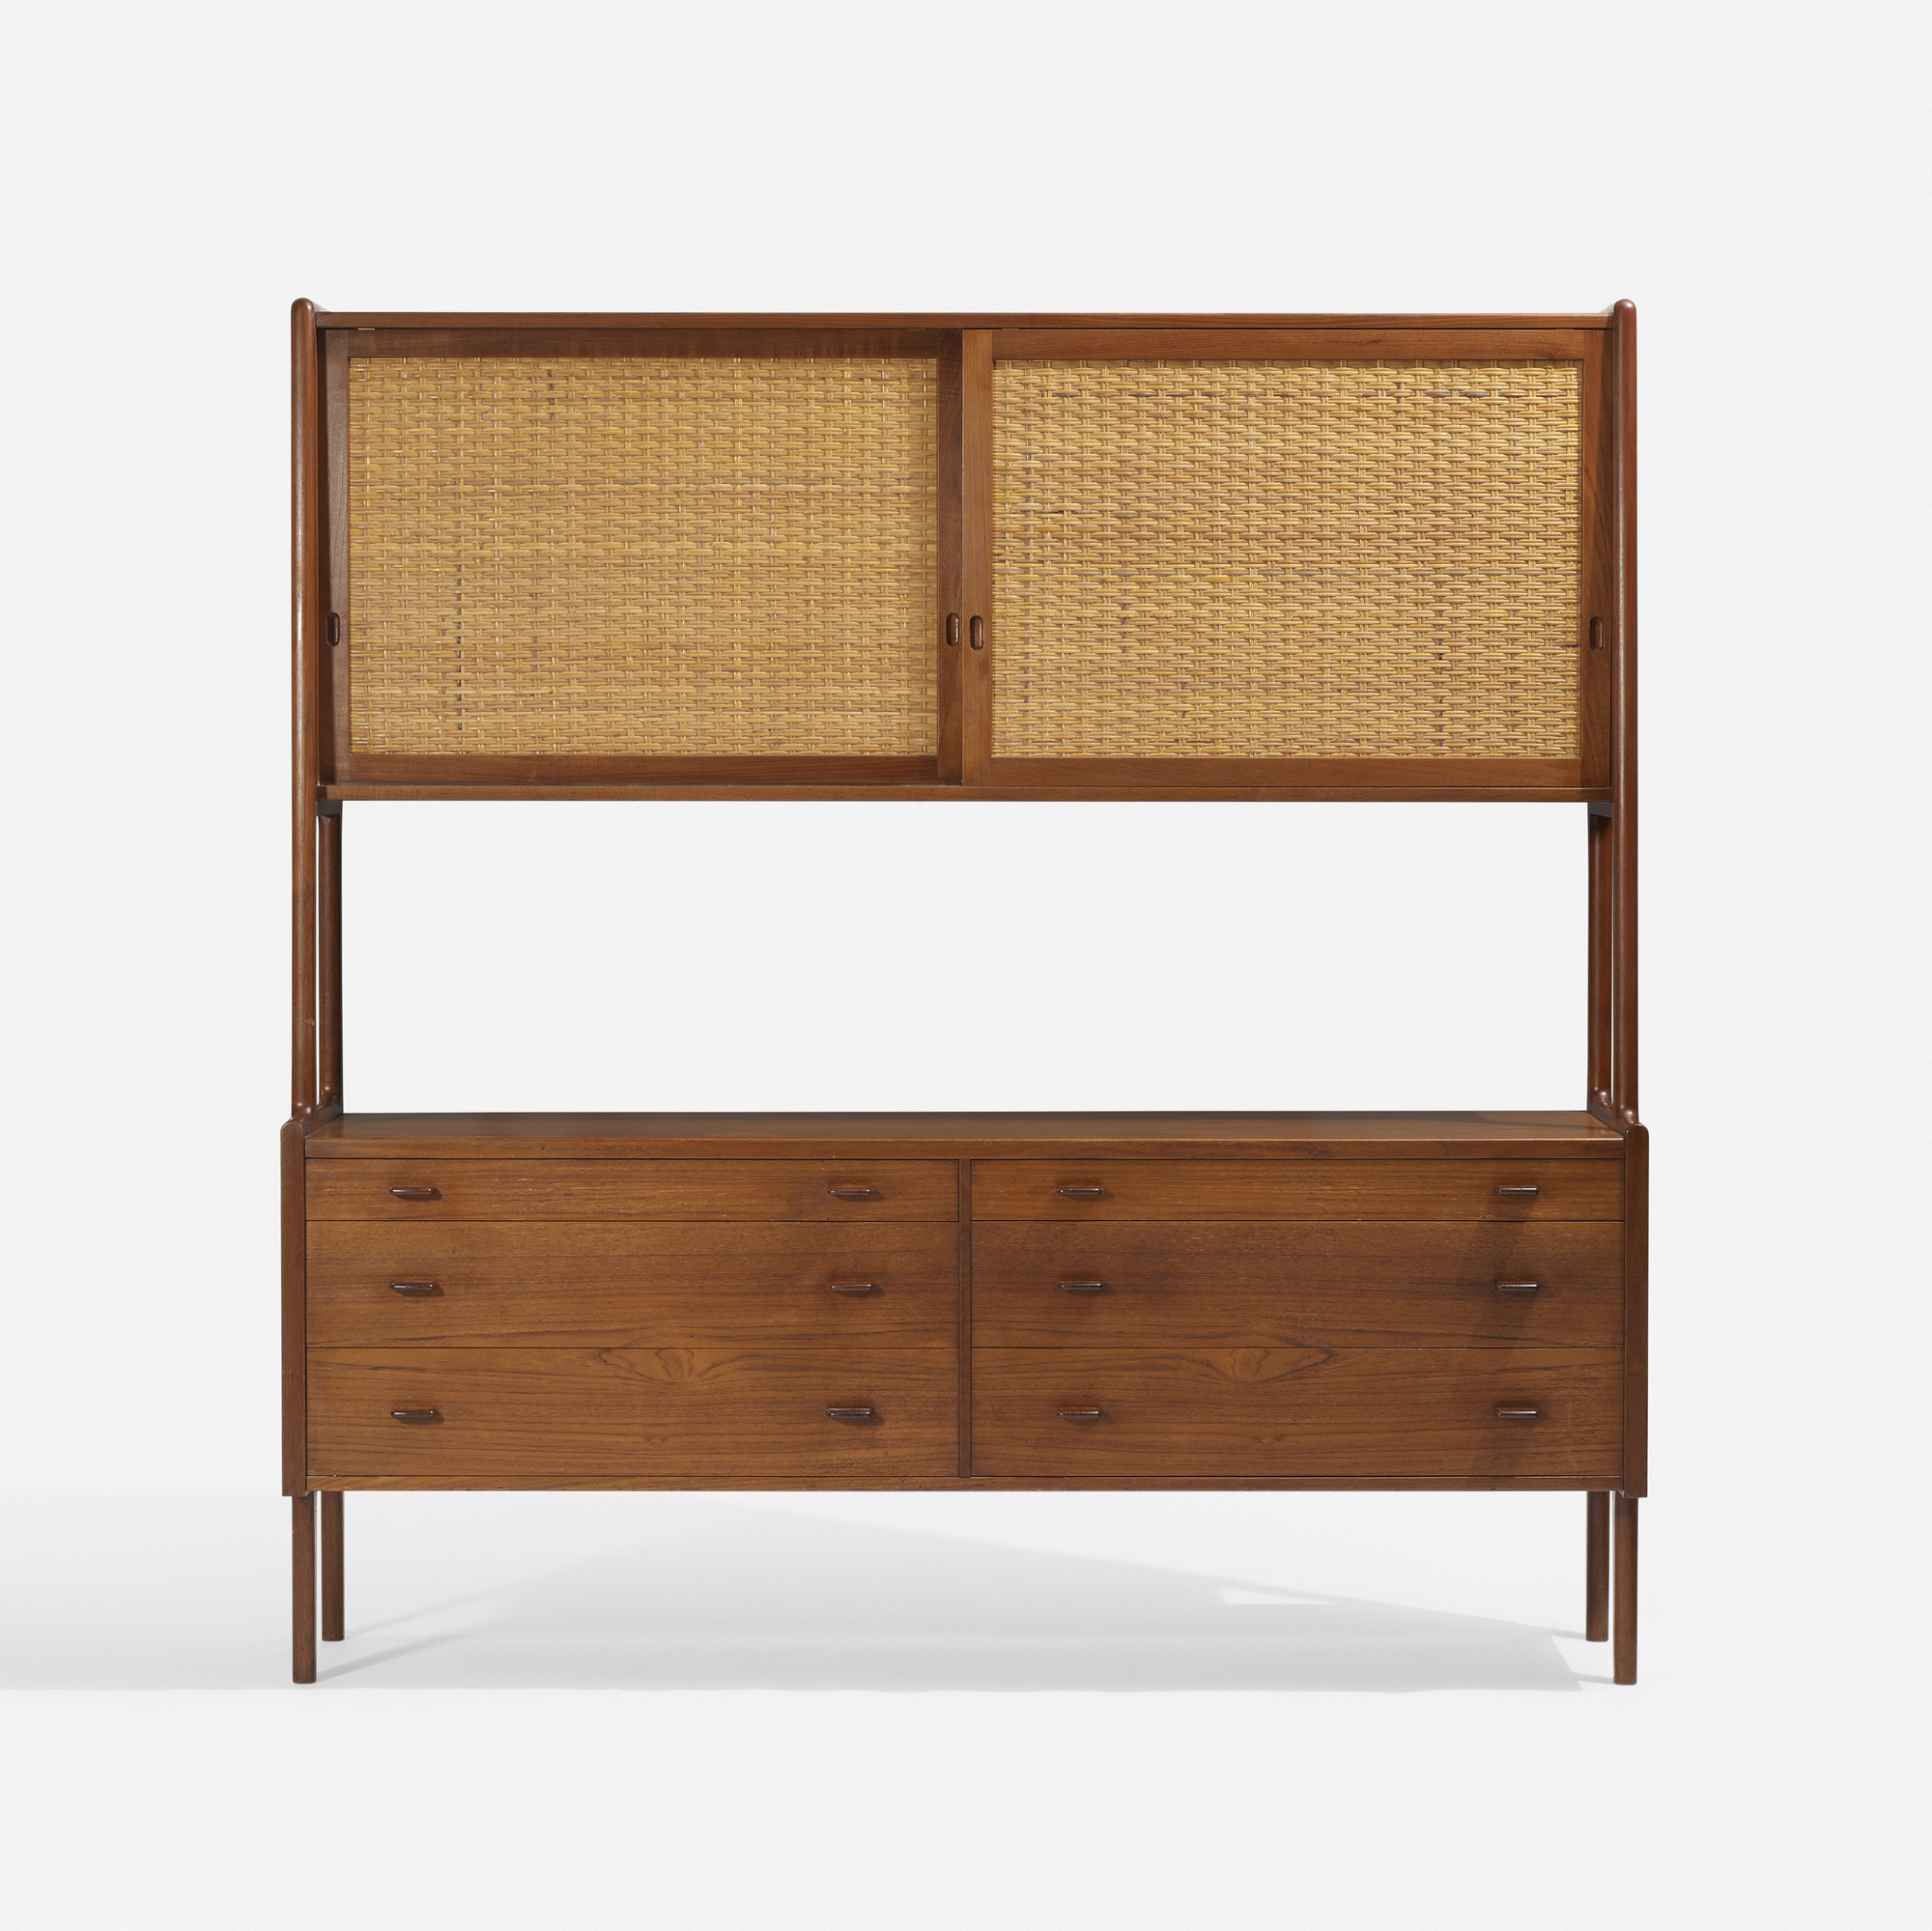 788: Hans J. Wegner / cabinet, model RY20 (1 of 3)